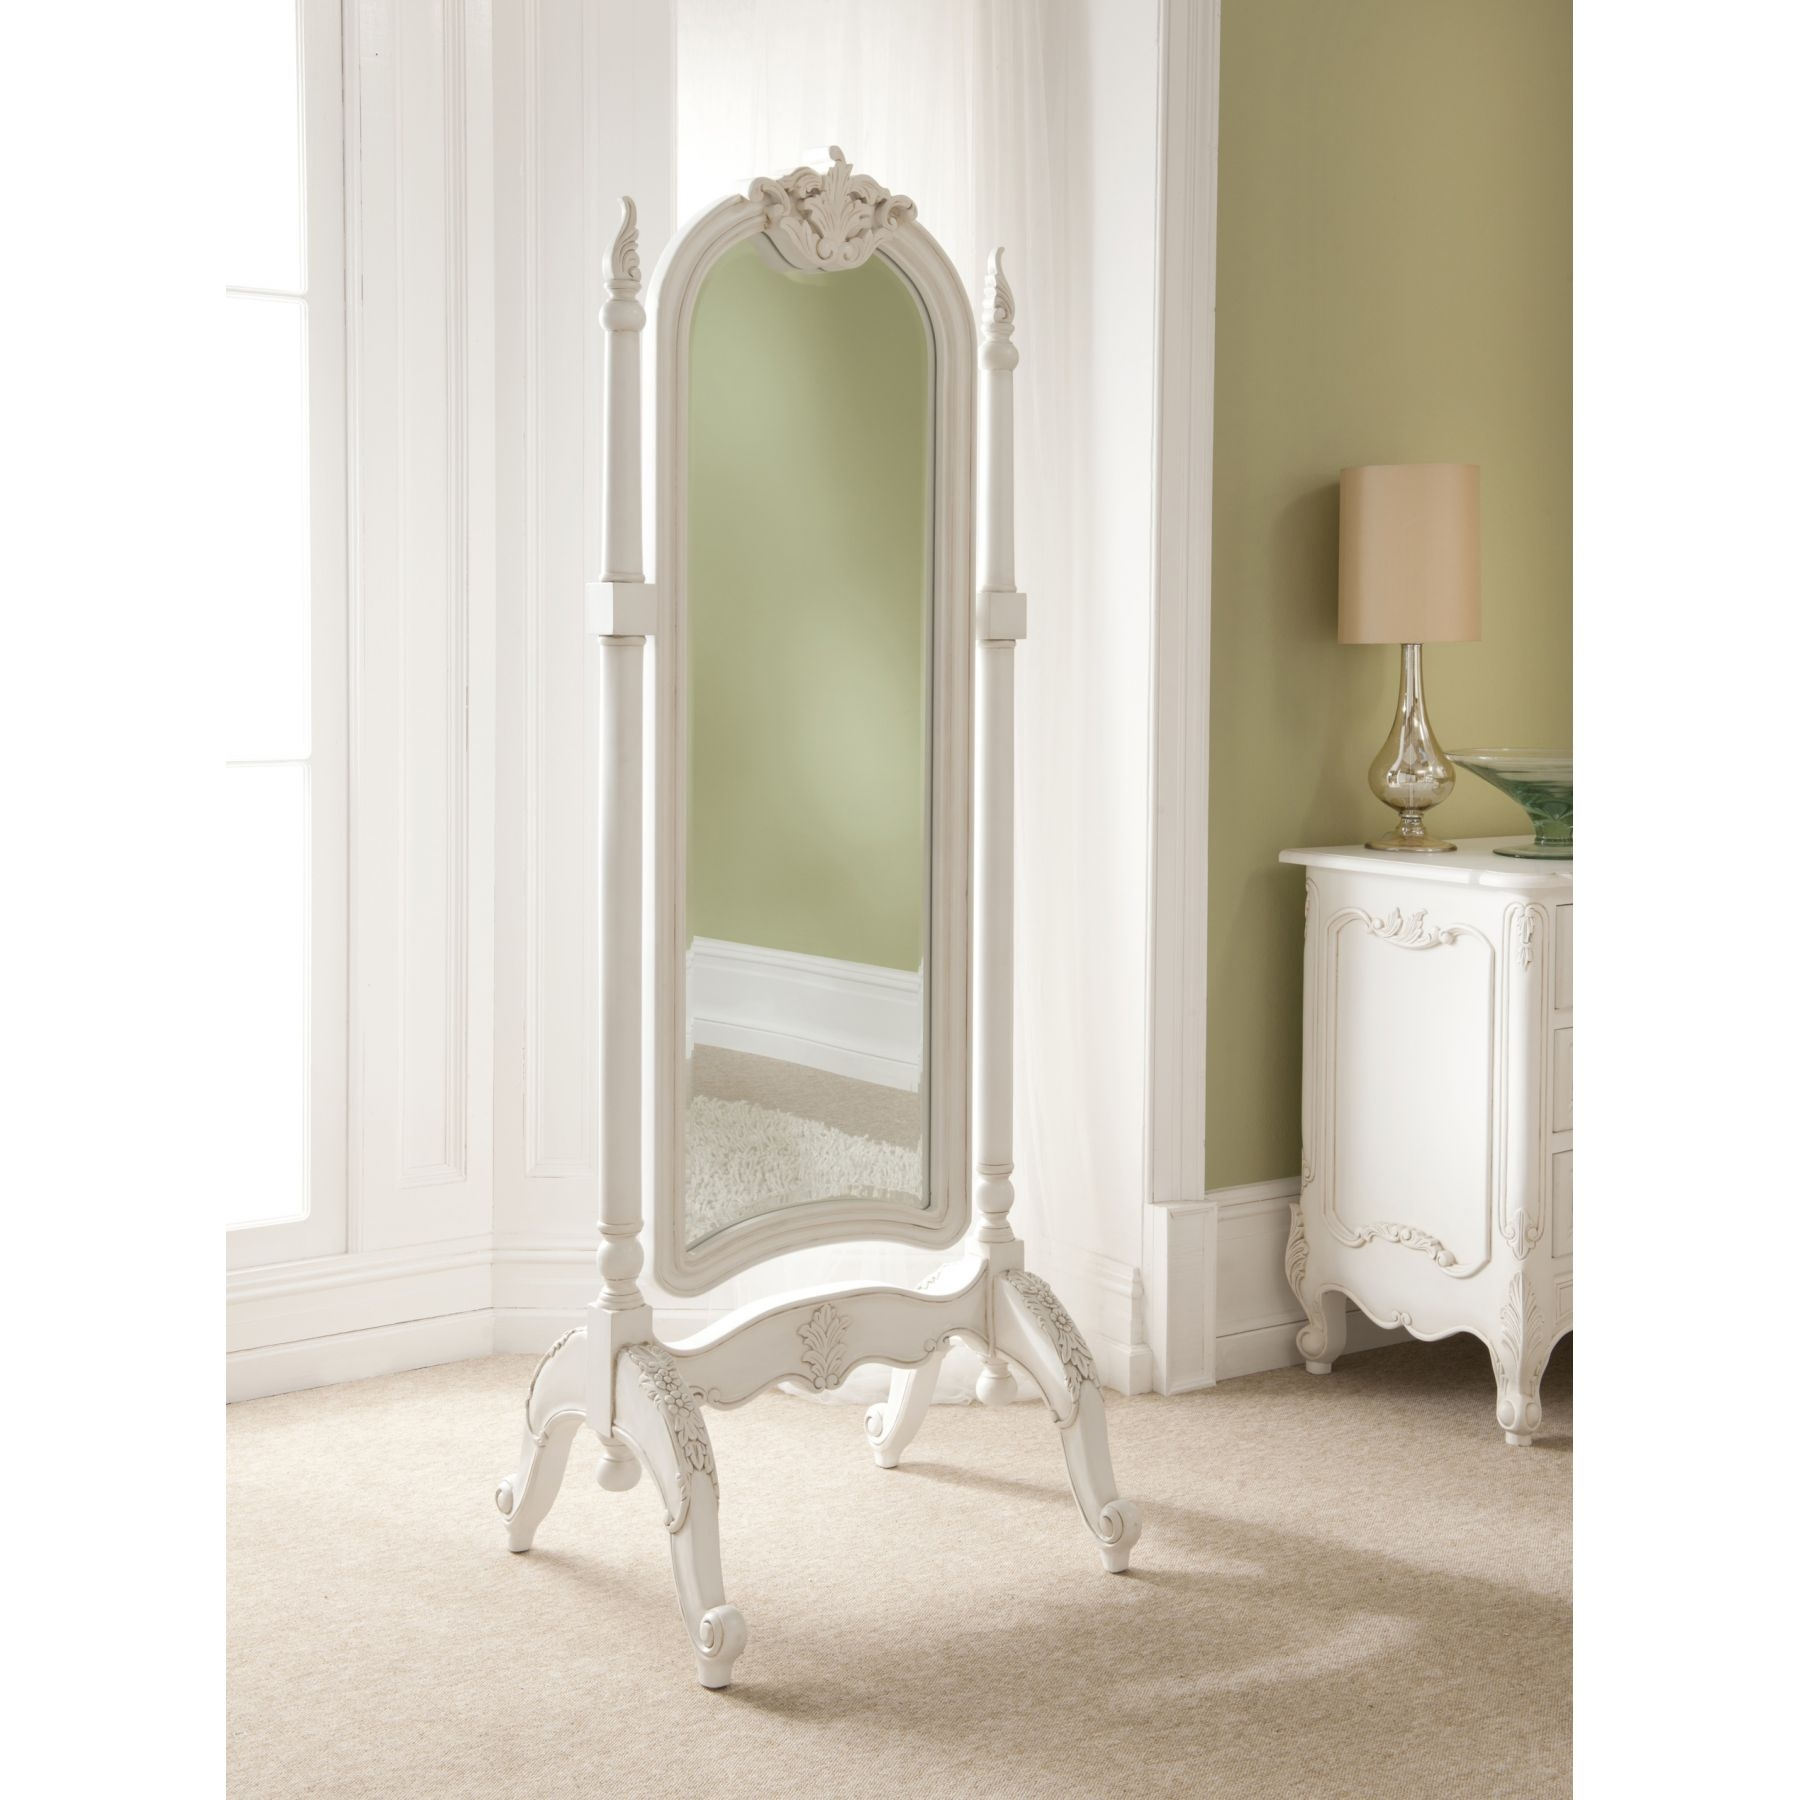 Cheval Mirror Cheval Mirror Pinterest Cheval Mirror Throughout Vintage Standing Mirror (Image 6 of 15)